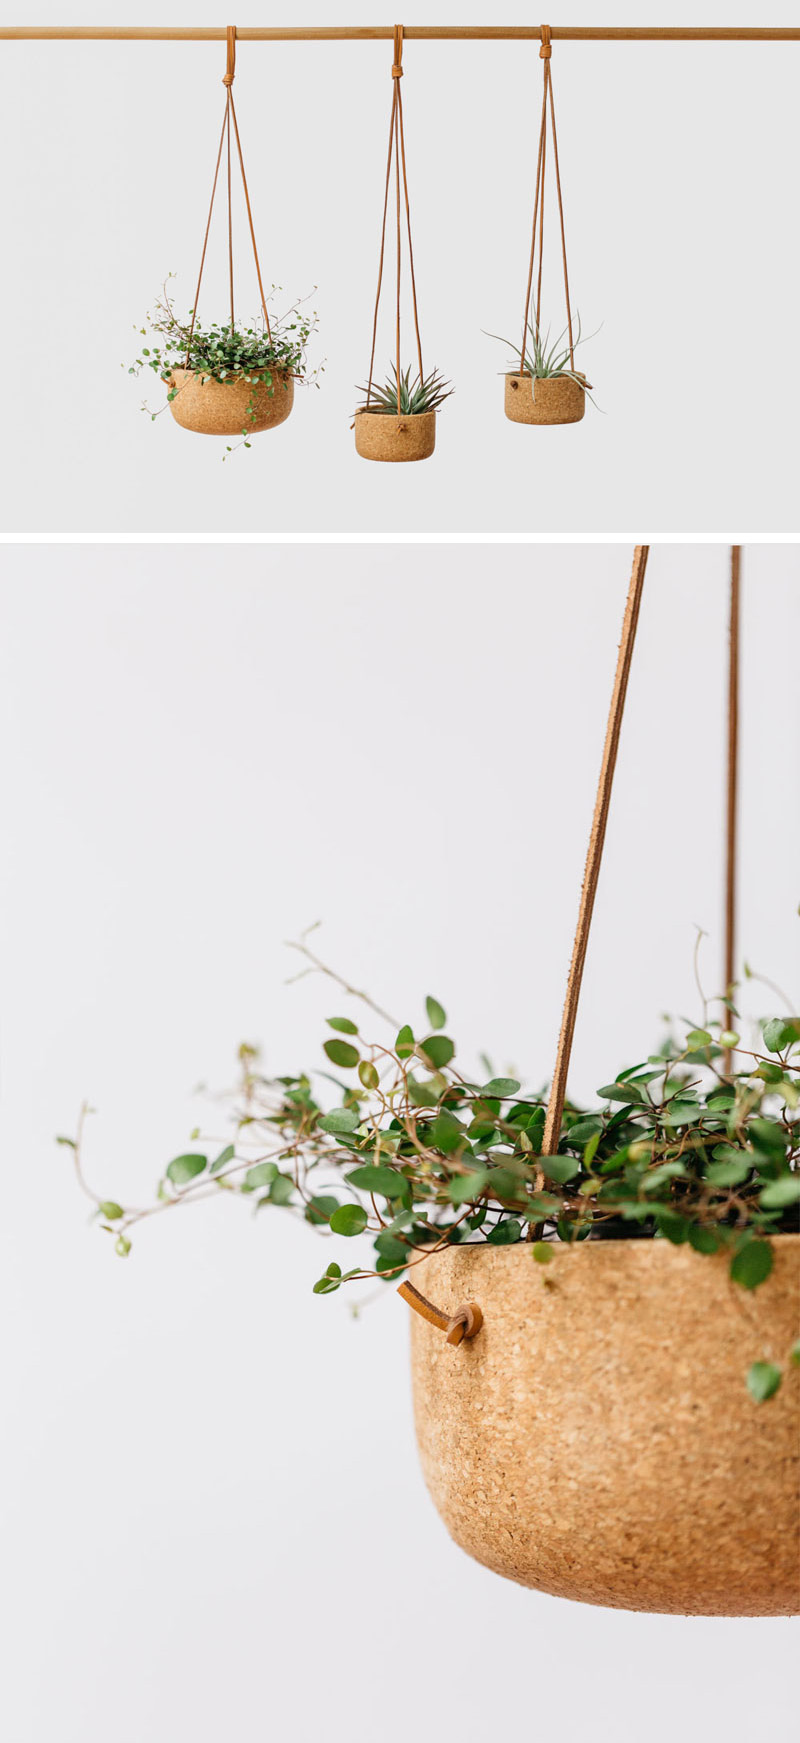 Vintage inspired these modern hanging planters are made from hand turned cork and natural